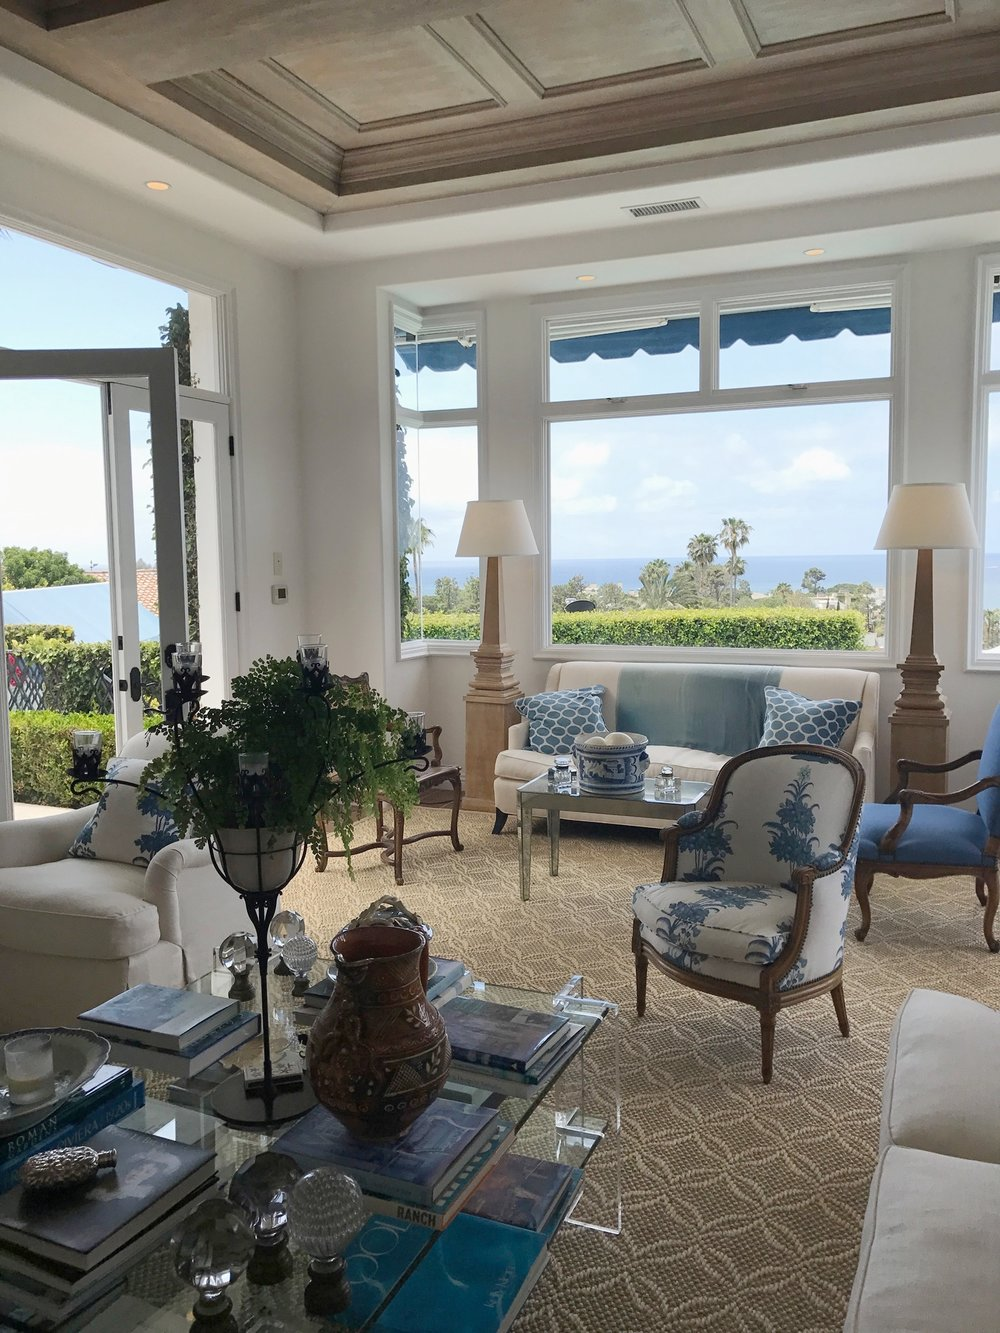 Laguna Beach California living room with windows looking out over Pacific Ocean.